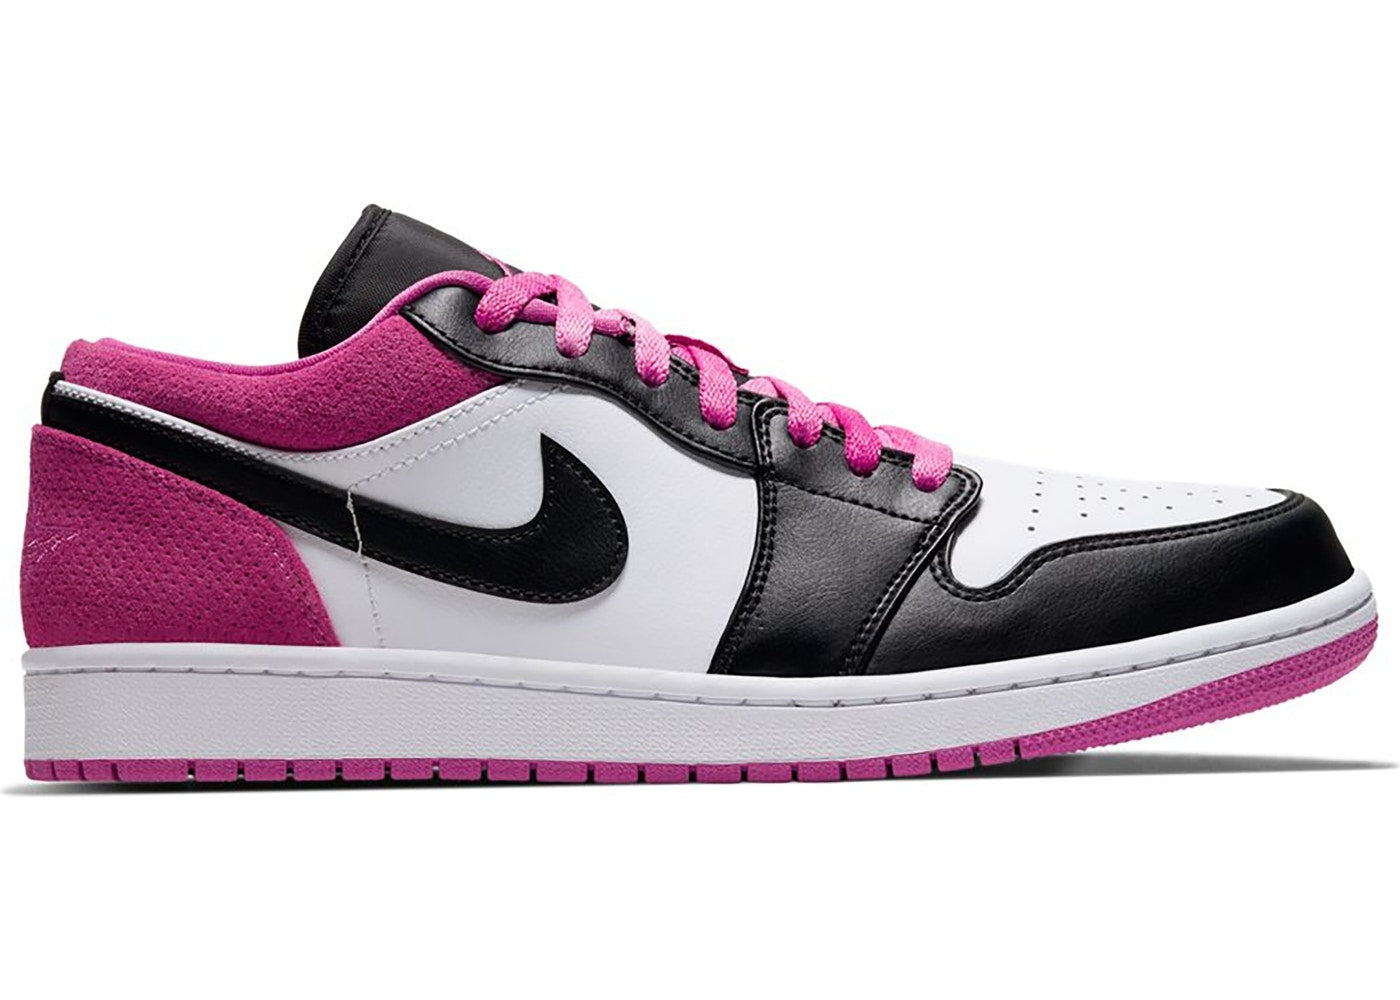 Air Jordan 1 Low SE 'Fuchsia'